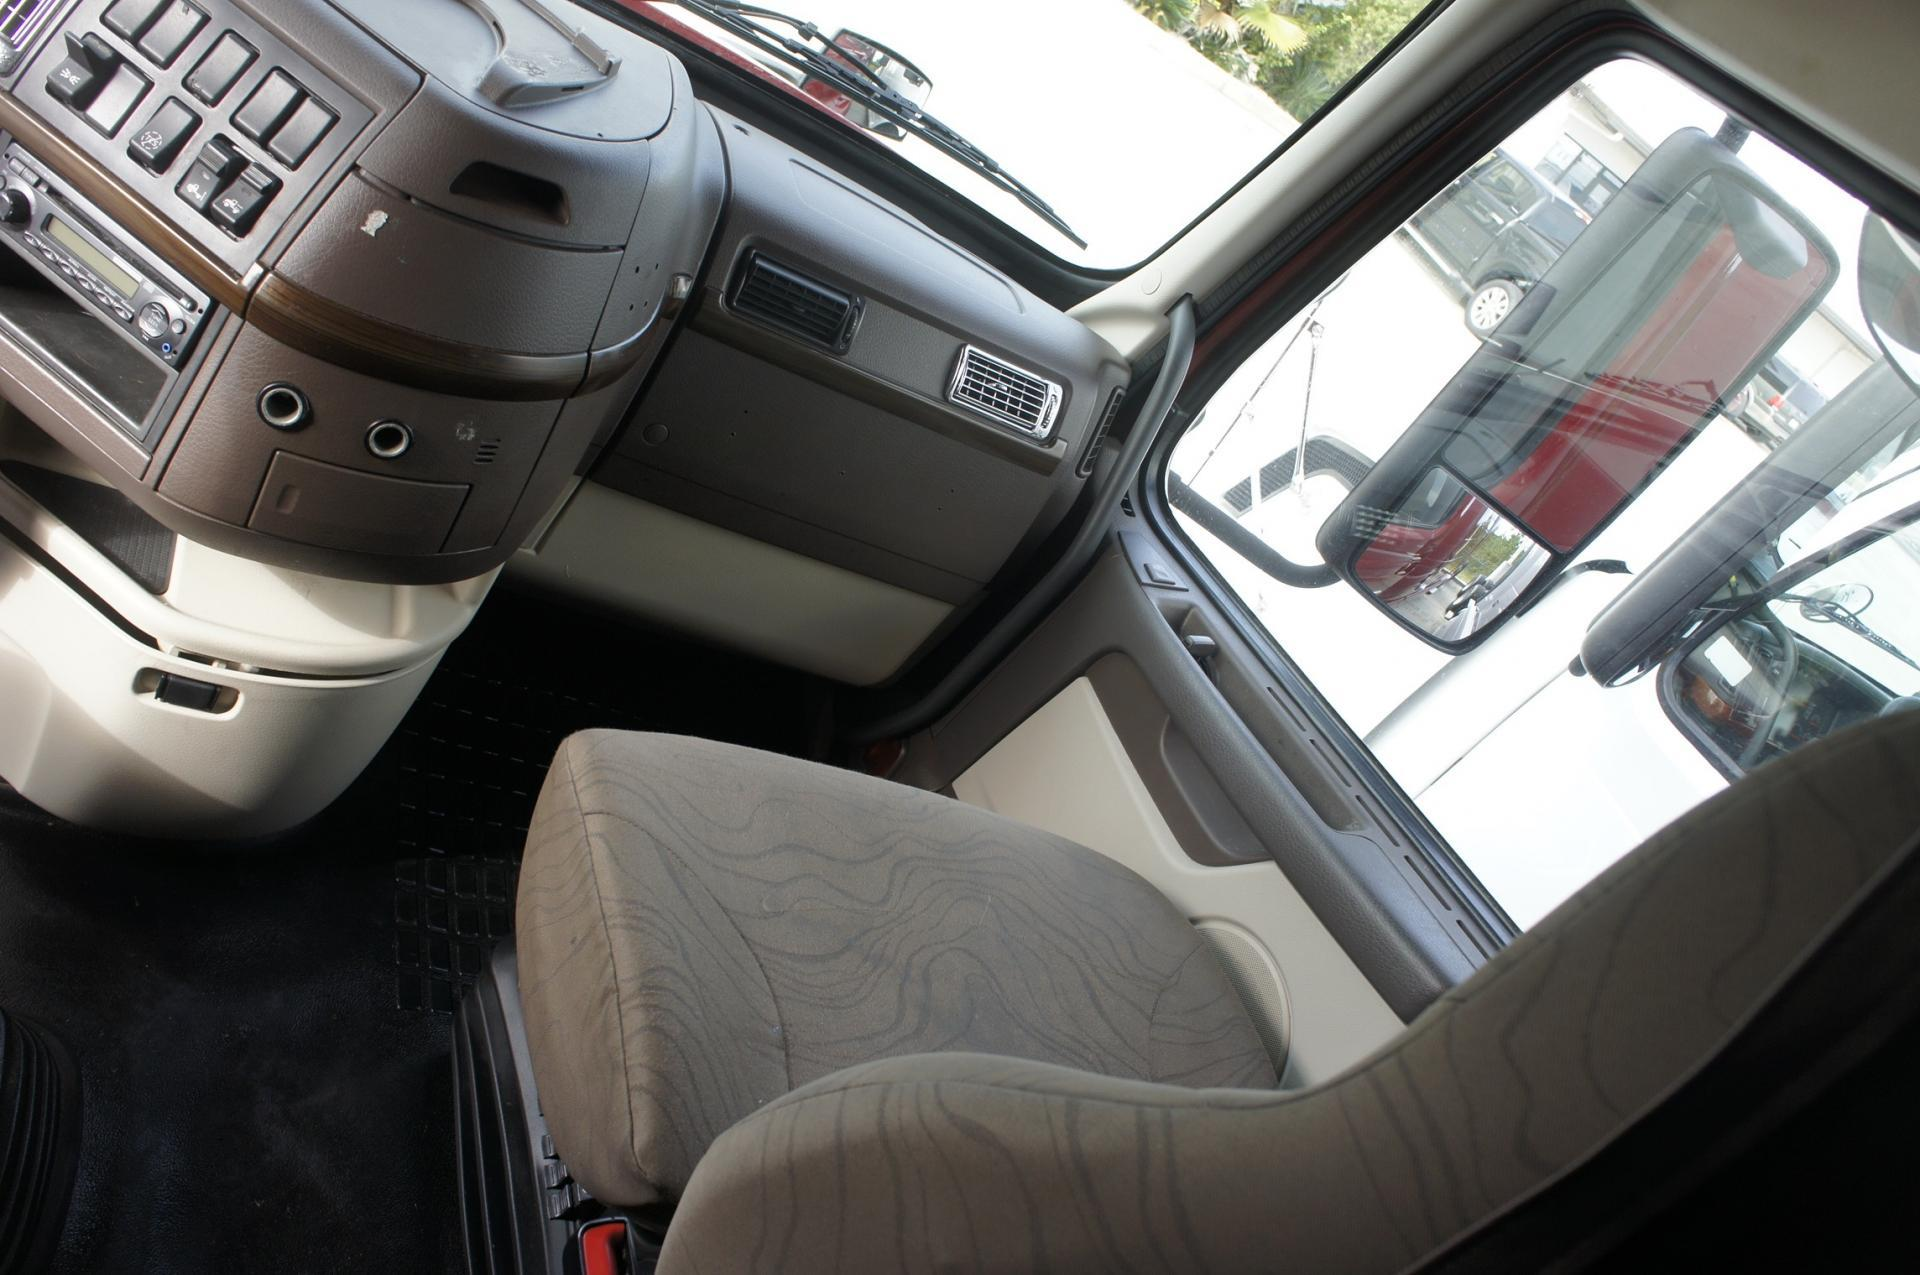 Used 2012 Volvo 780 for sale-59213500